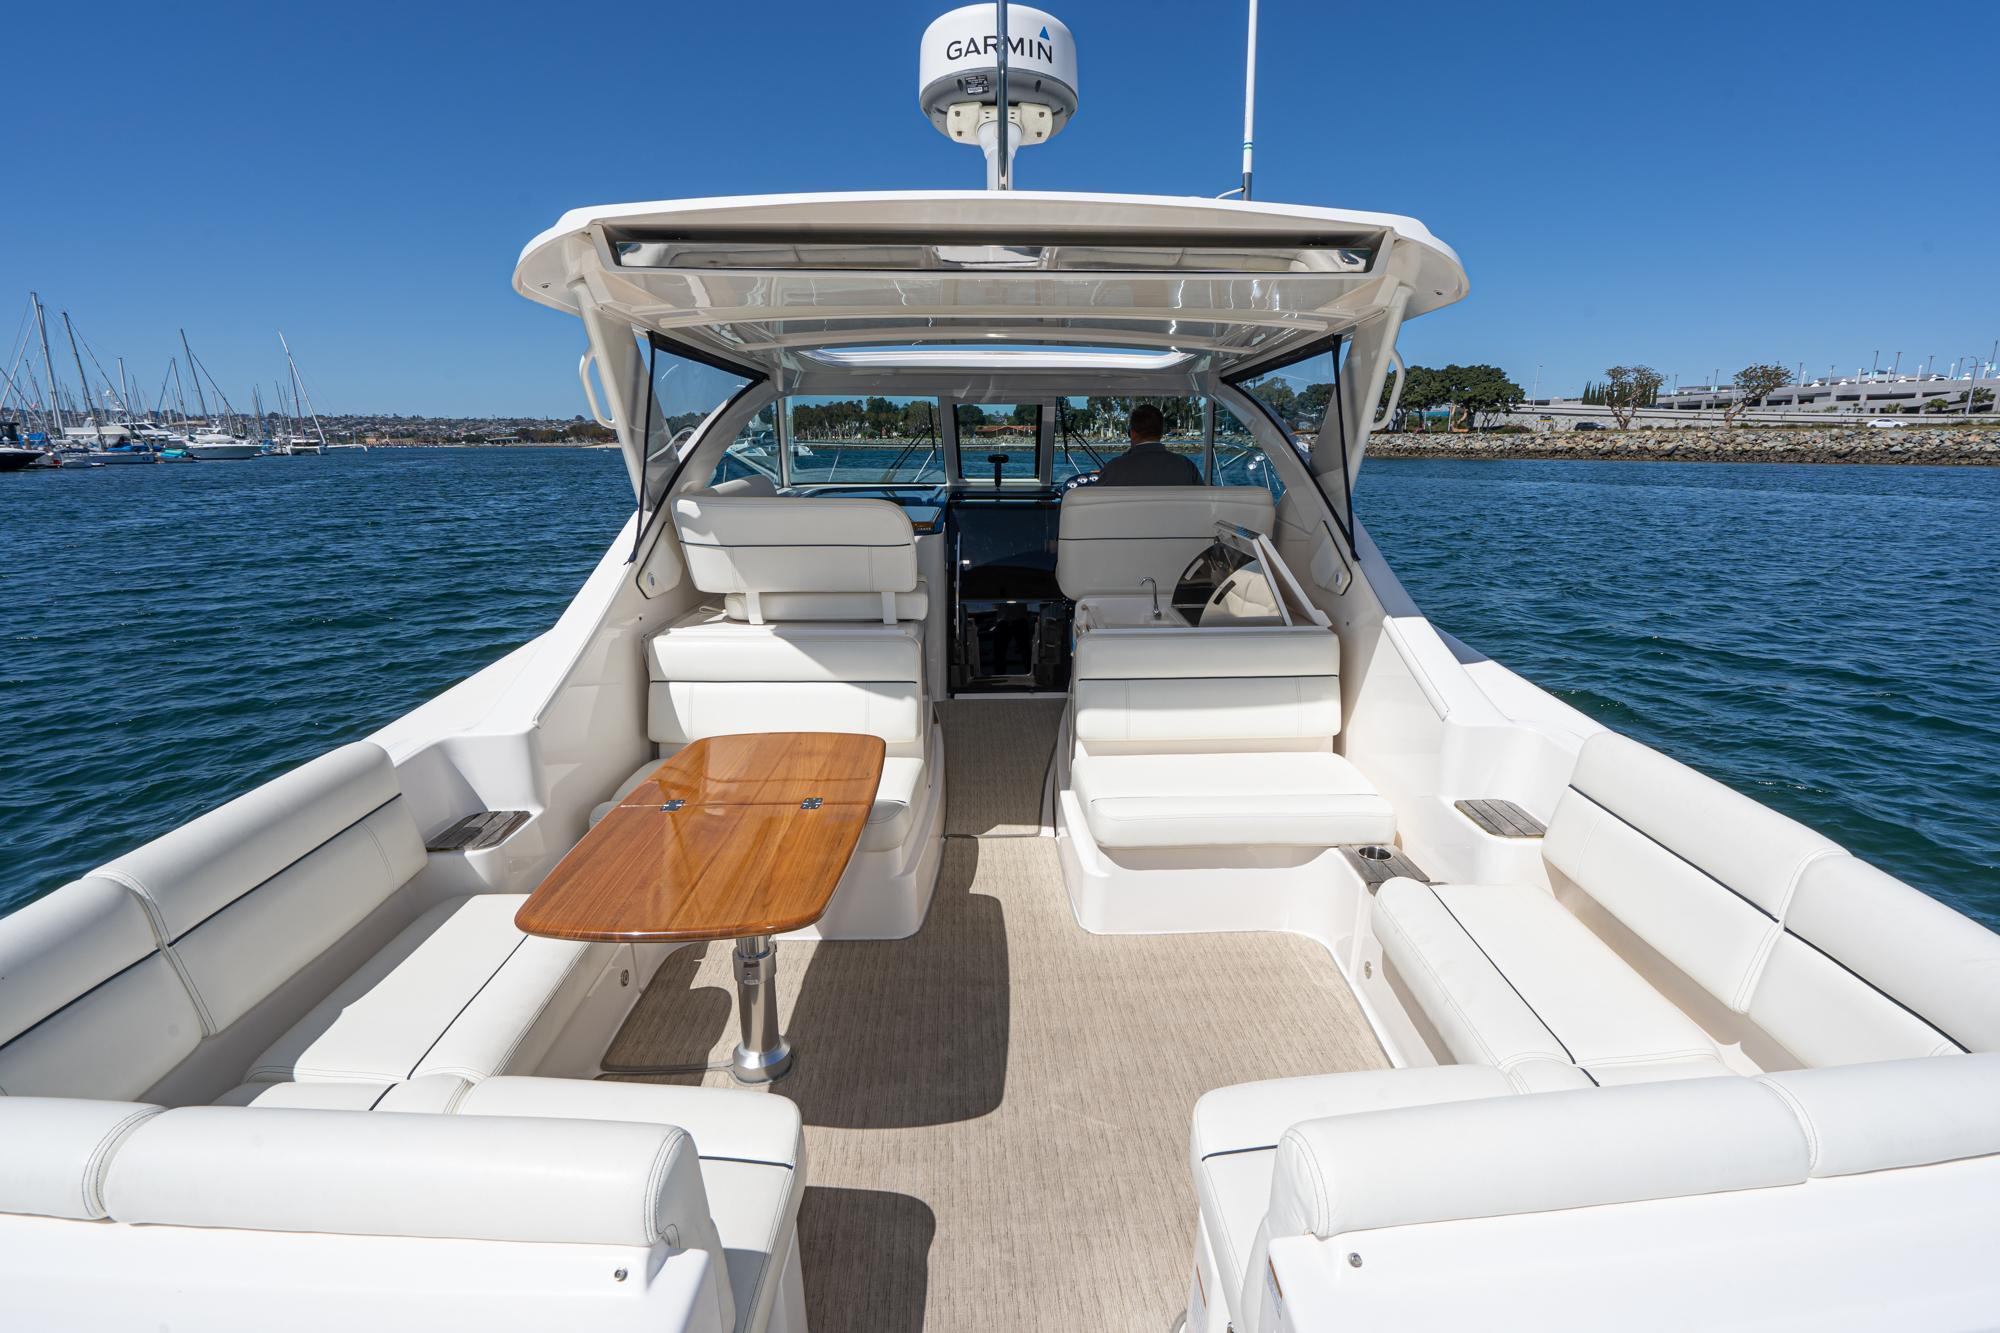 2018 Tiara Yachts 31 #TB094FJRP inventory image at Sun Country Coastal in San Diego